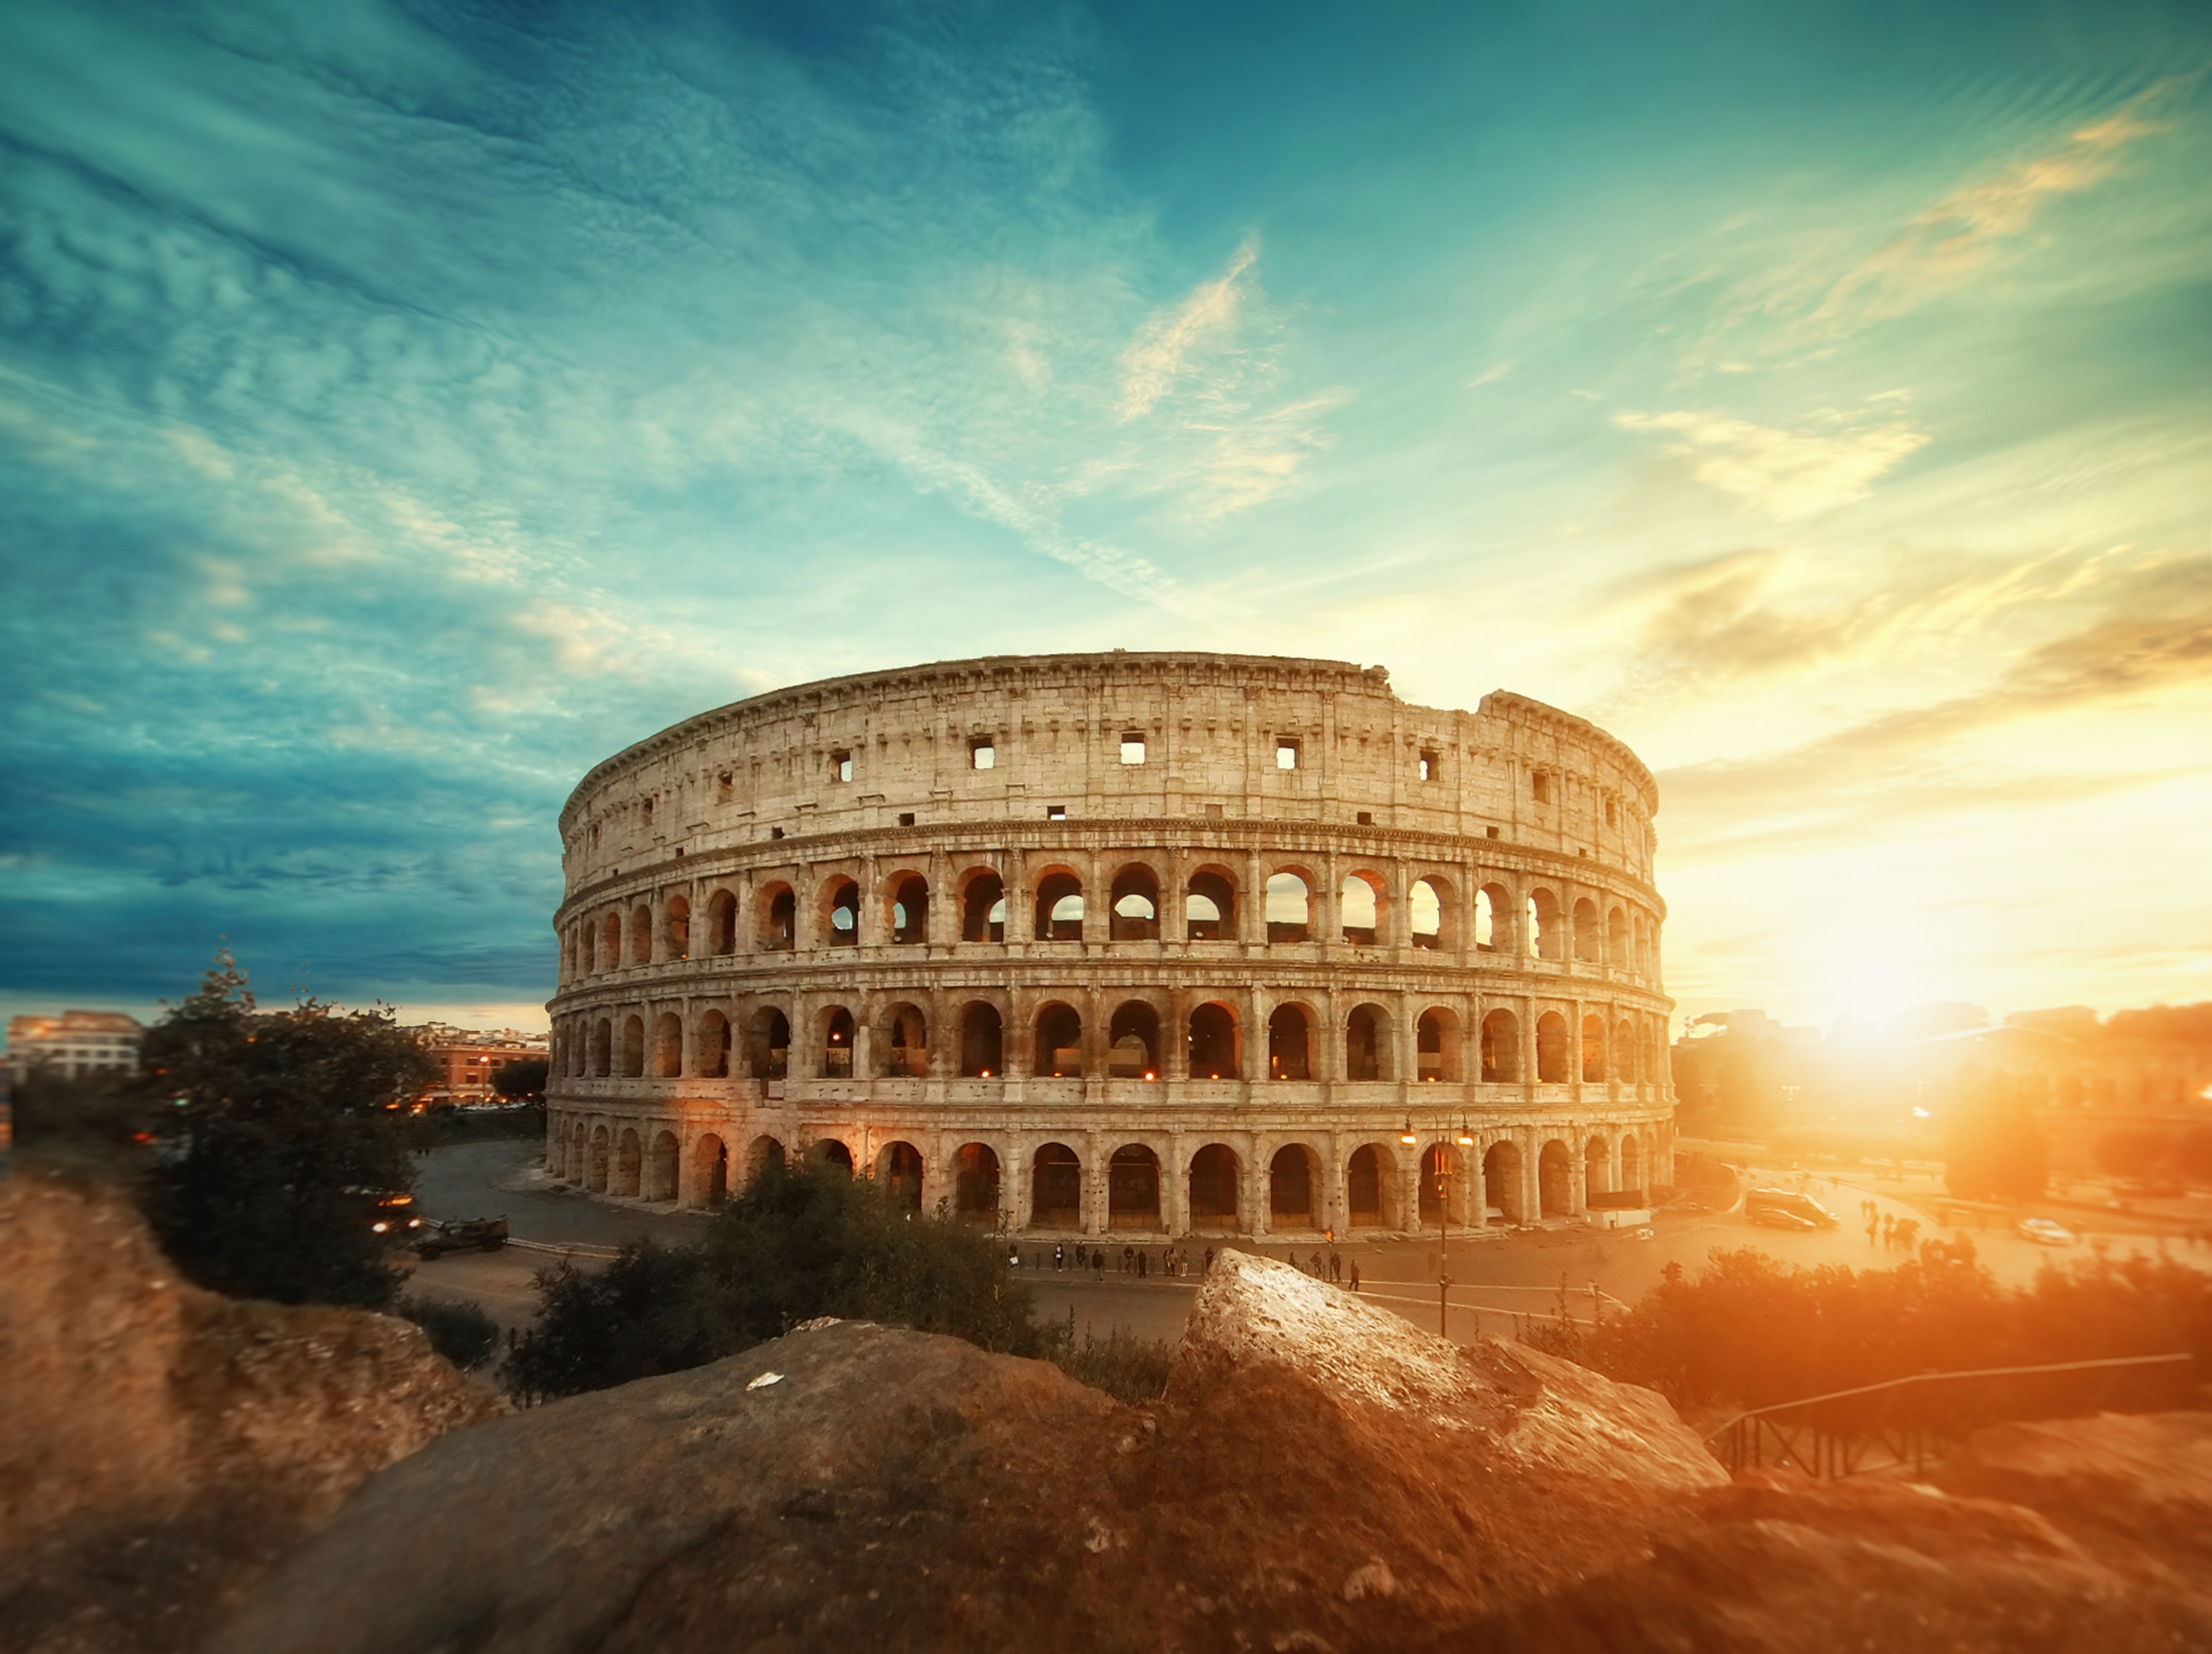 Colosseum - Rome, Italy - 3 Day Itinerary